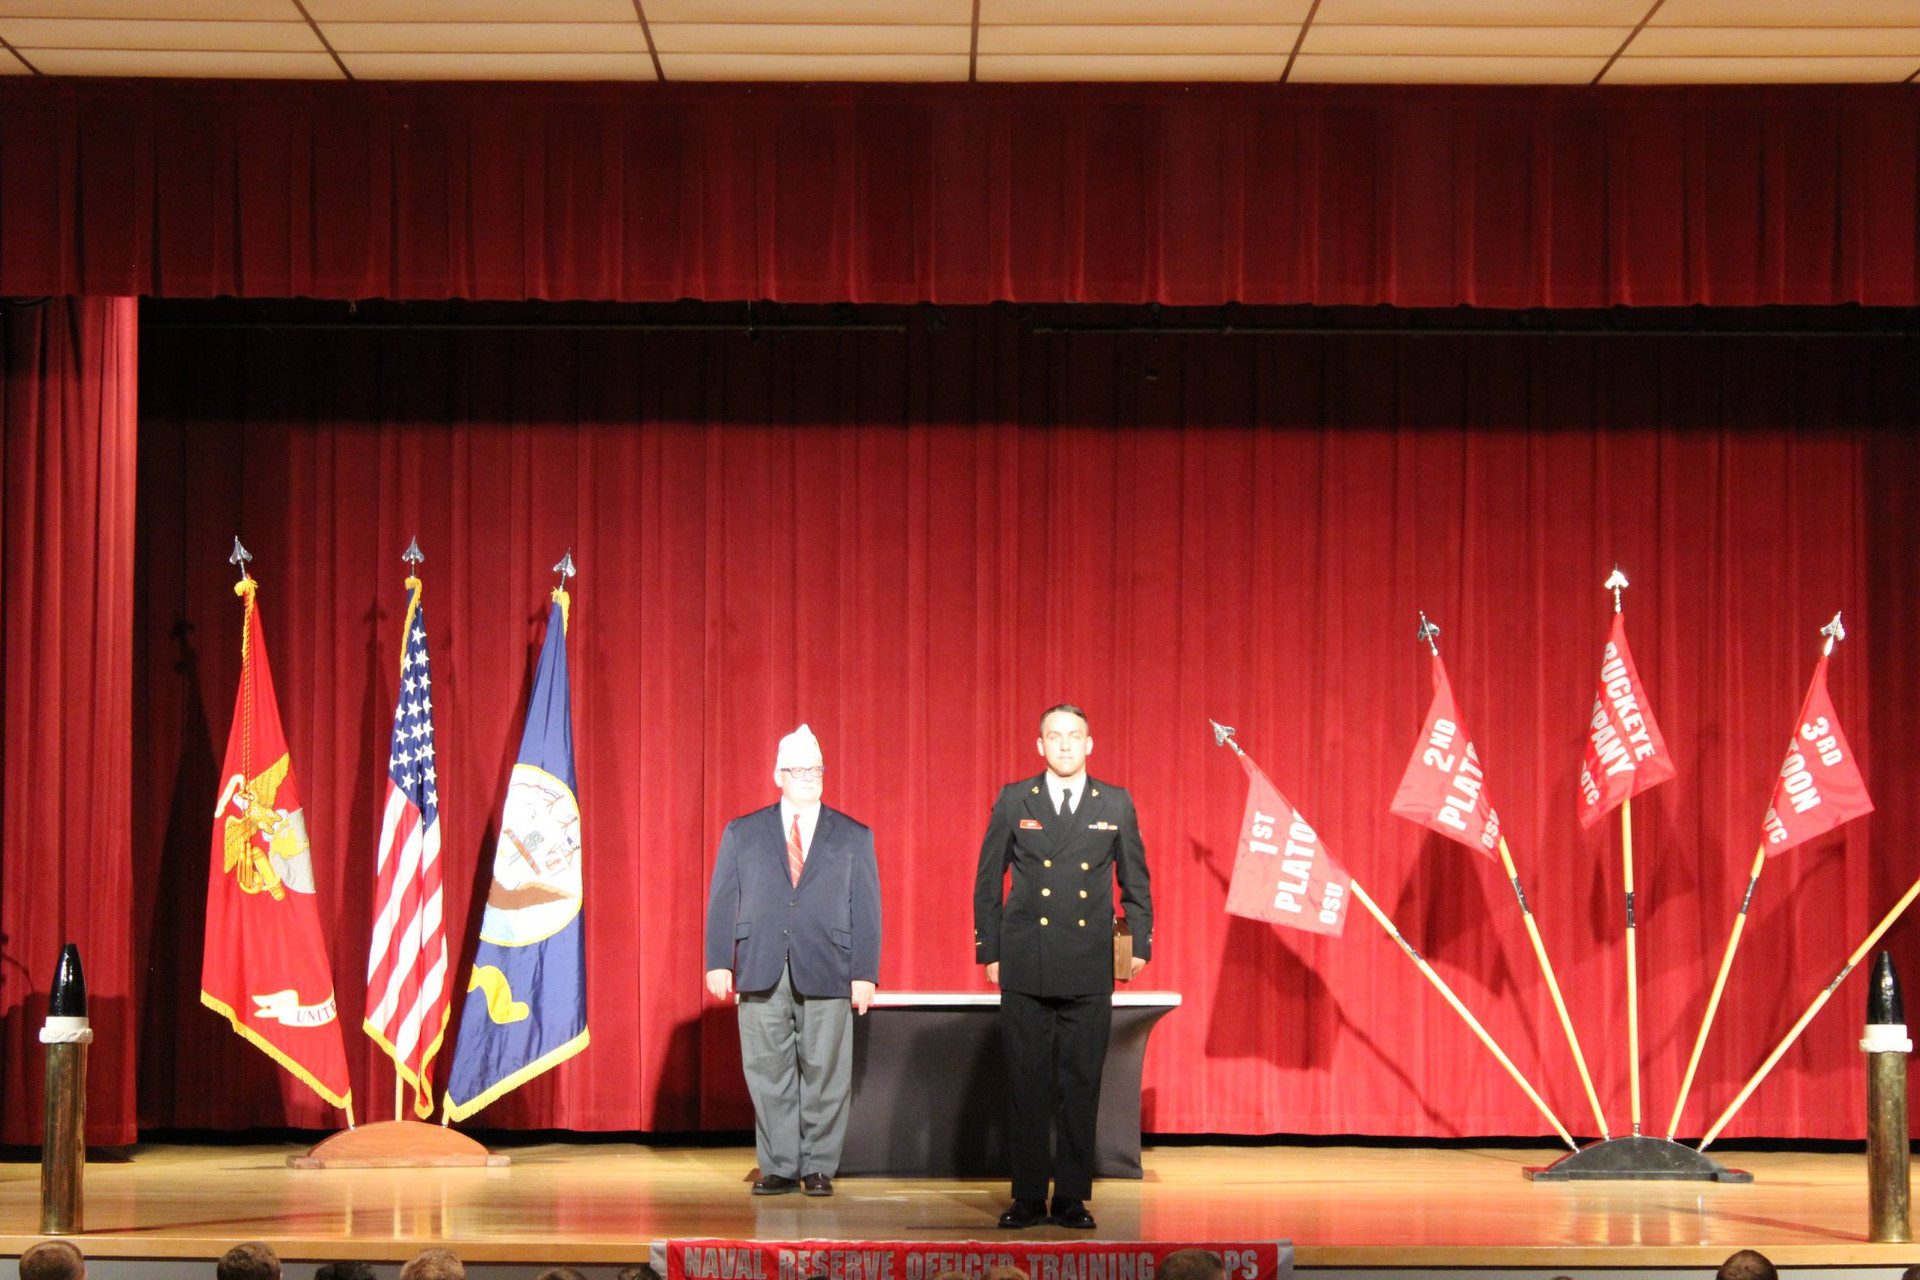 Bill Roese, AMVETS Department of Ohio 12th District Commander gets ready to give the AMVETS Award to Midshipman Robert Milburn (Navy) who is majoring in Construction Systems Management at The Ohio State University.